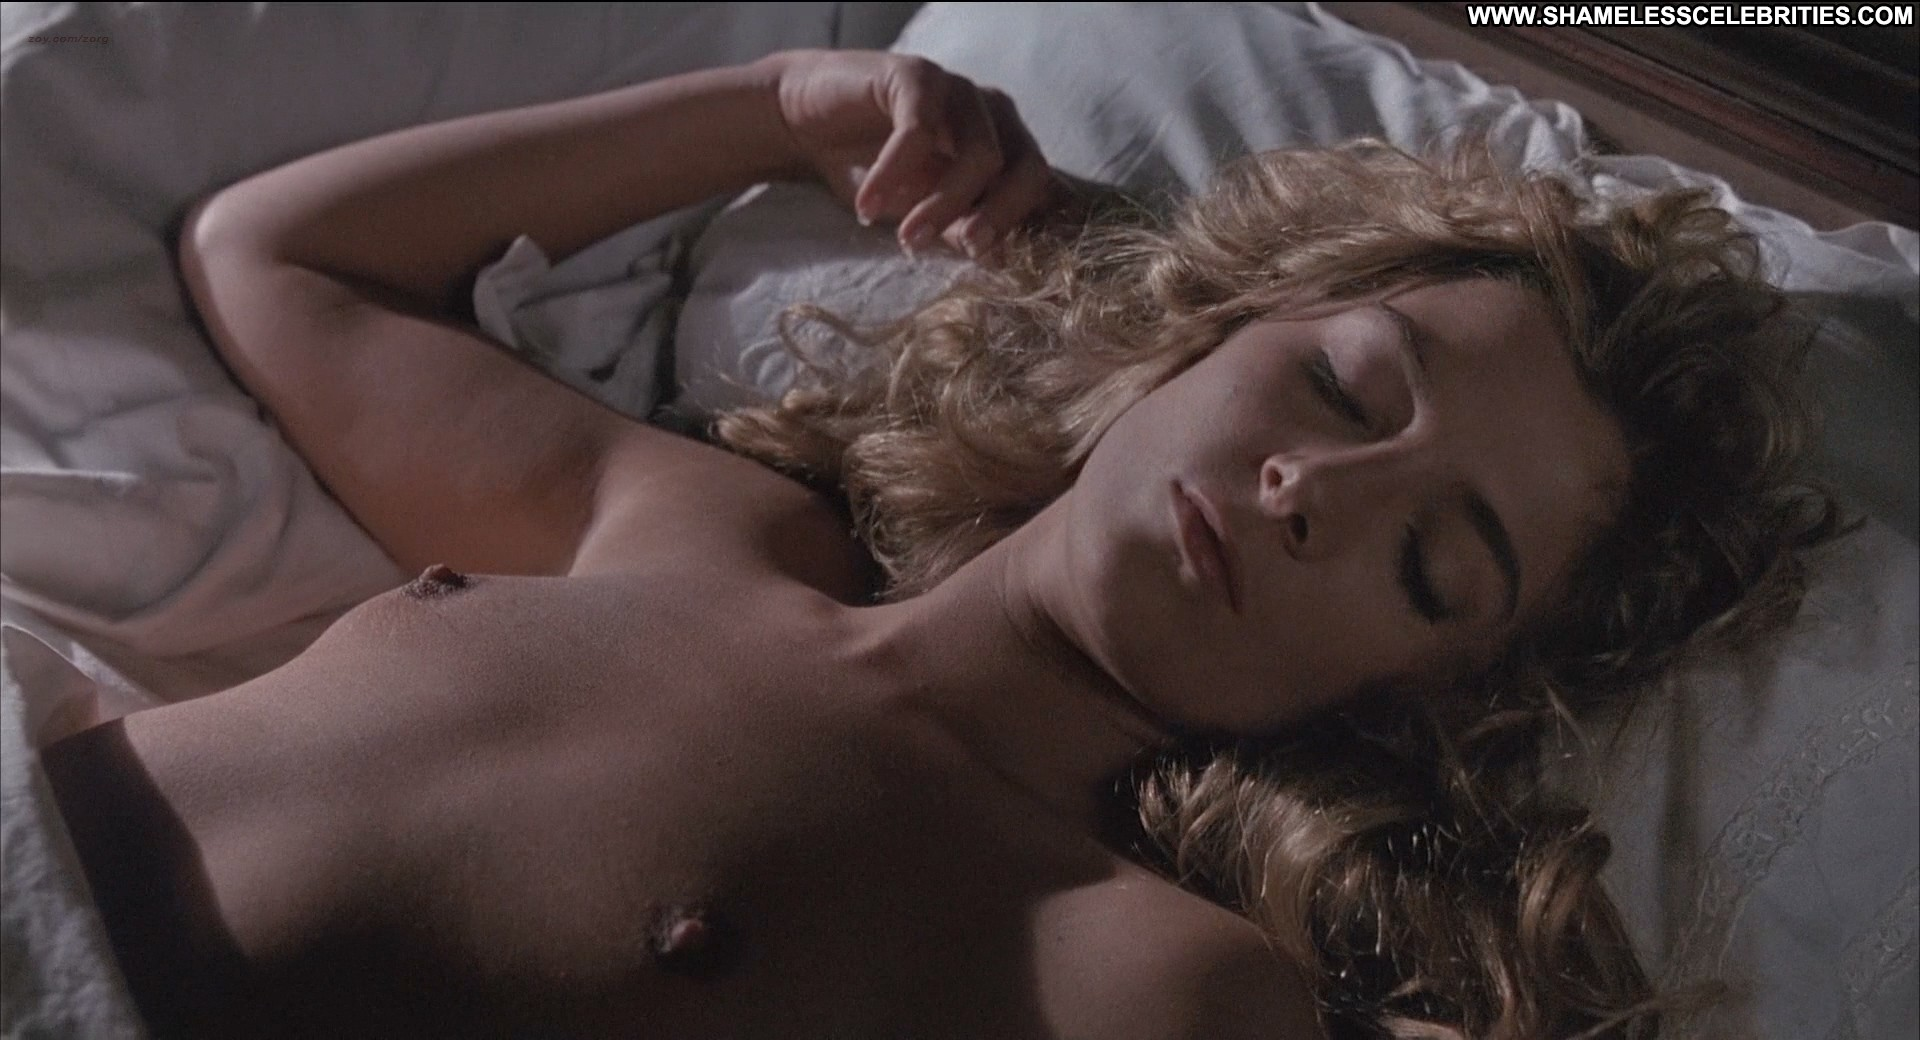 Jane fonda nude from barbarella 1968 4